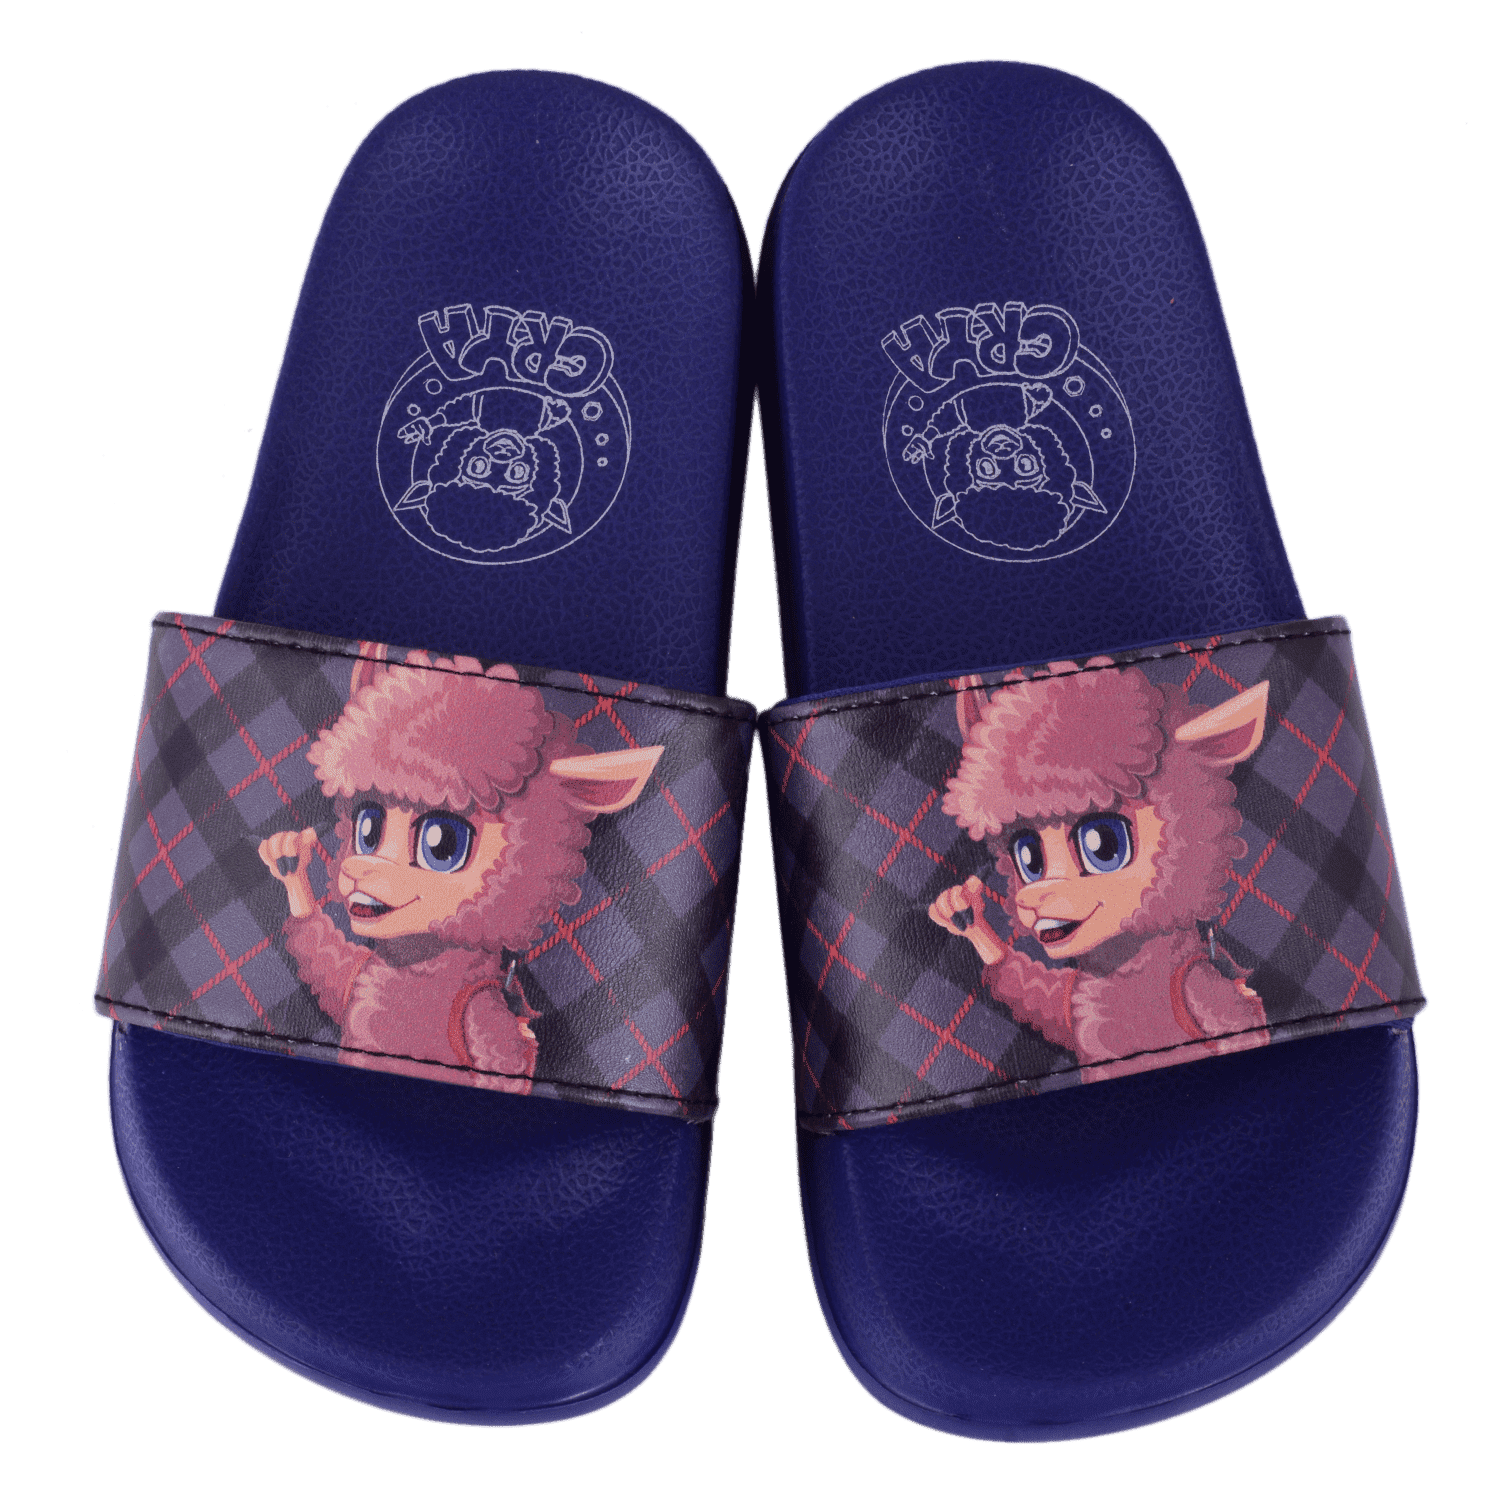 crya-chill-pill-slide-on-slipper-slsl8001chiblu